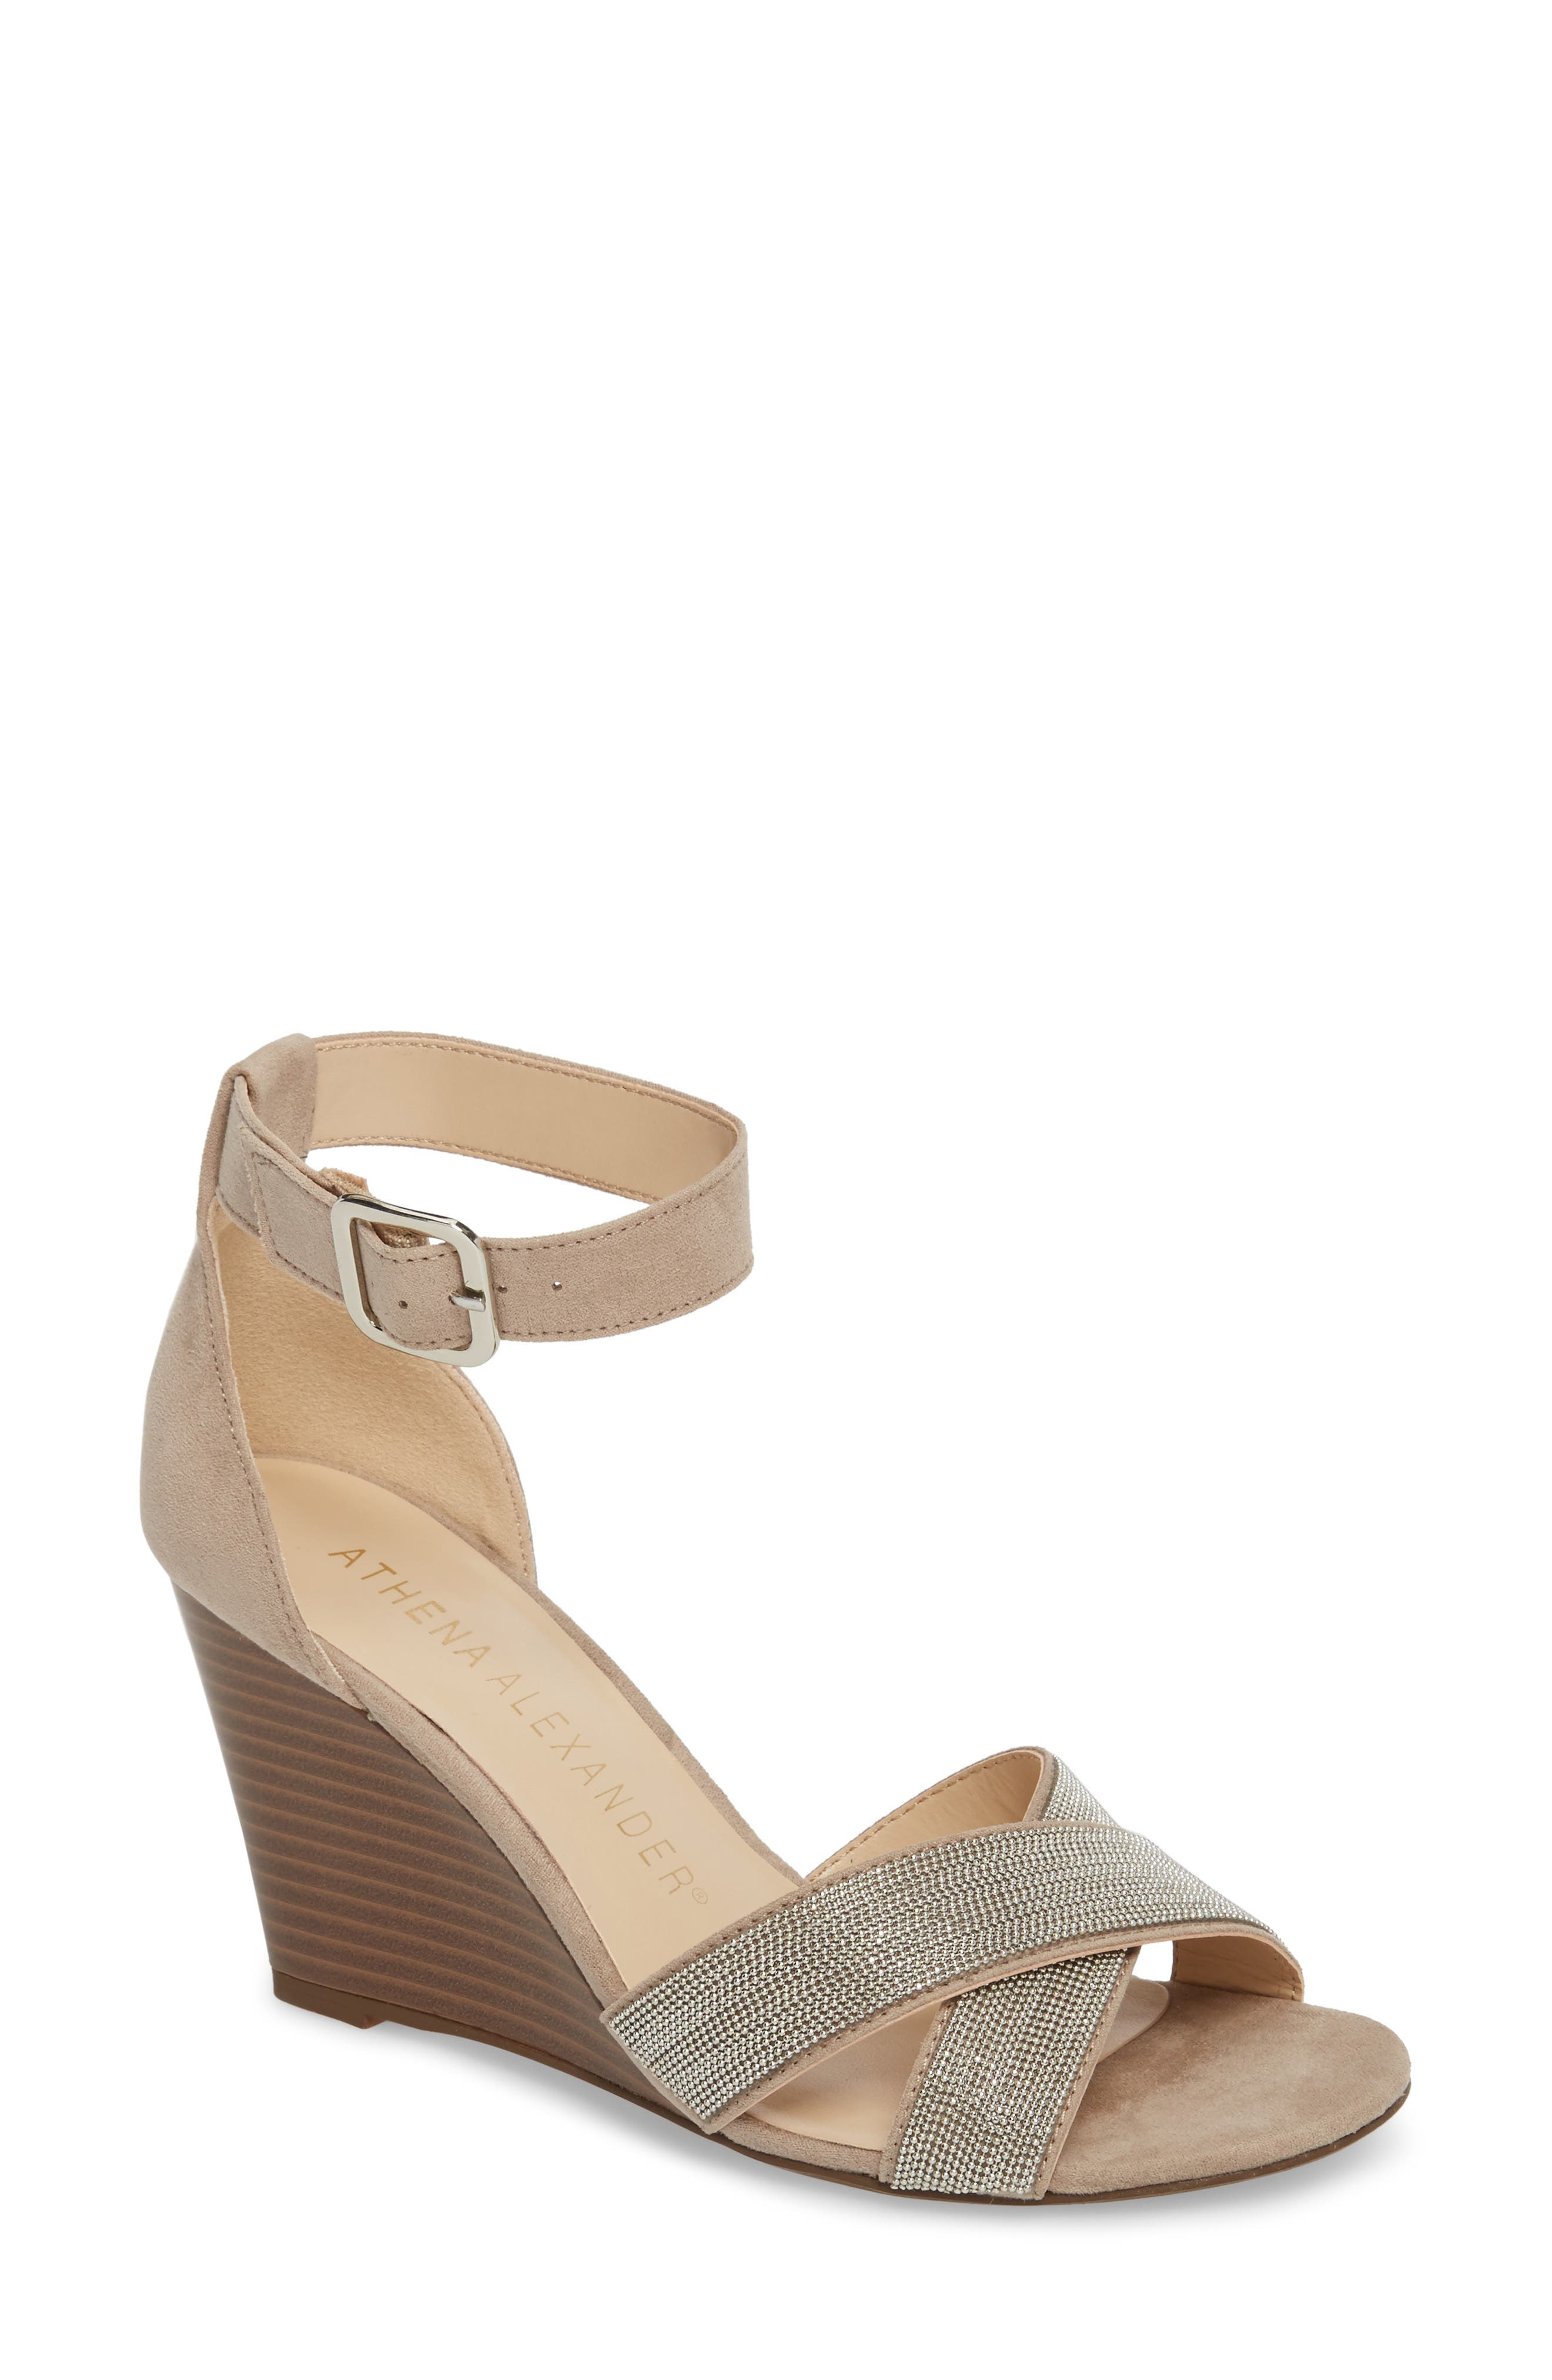 Zorra Wedge Sandal,                             Main thumbnail 1, color,                             TAUPE SUEDE